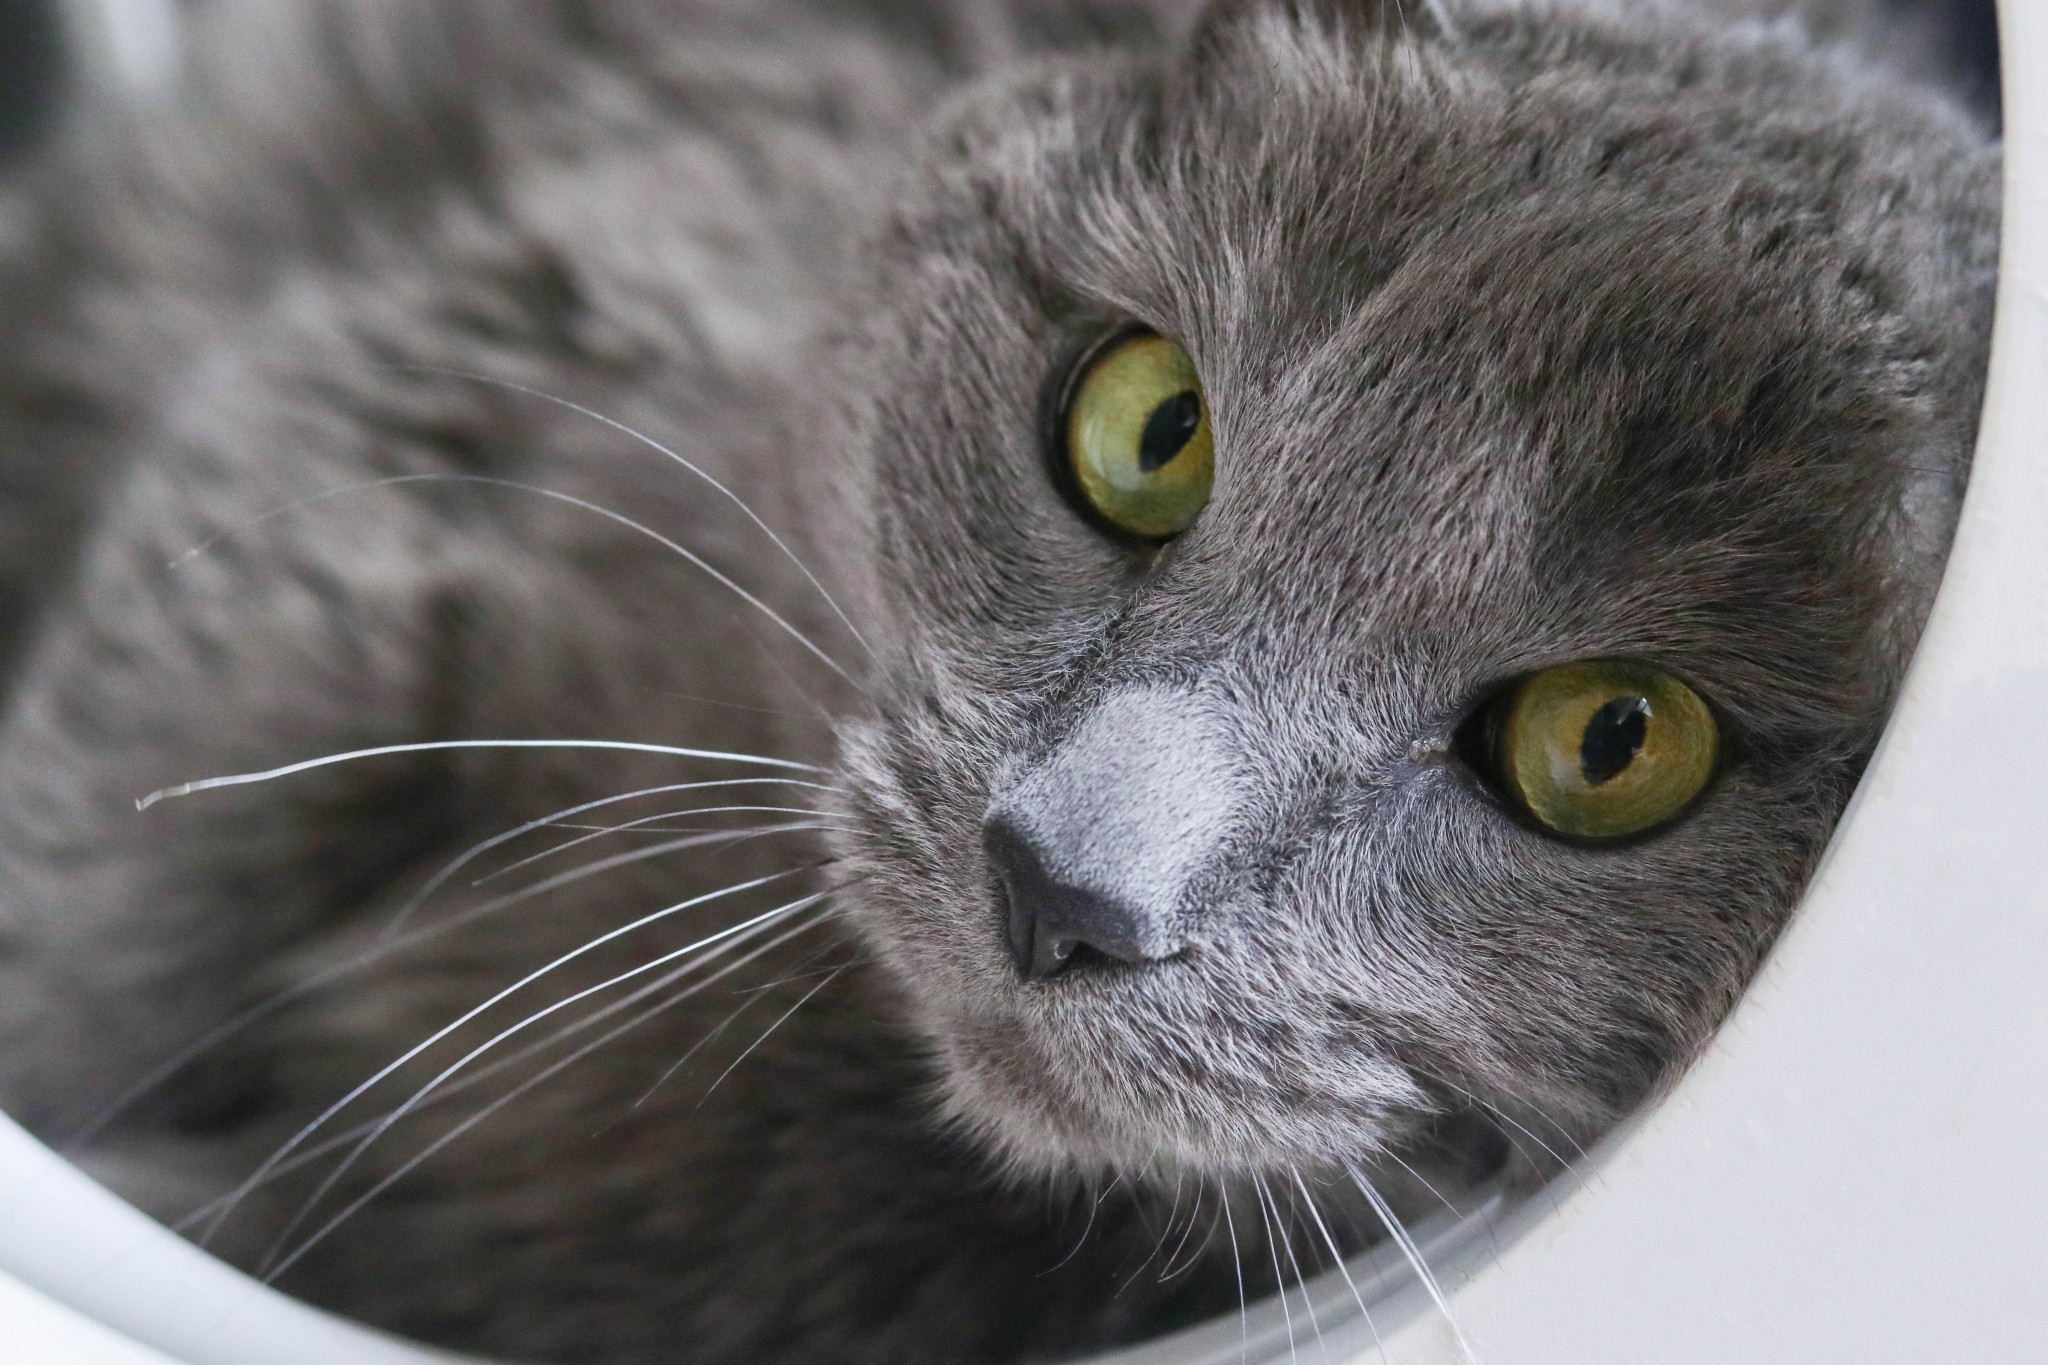 Creature Feature: A lovable soul is behind Tobi's piercing eyes (and you can adopt Tobi right now)